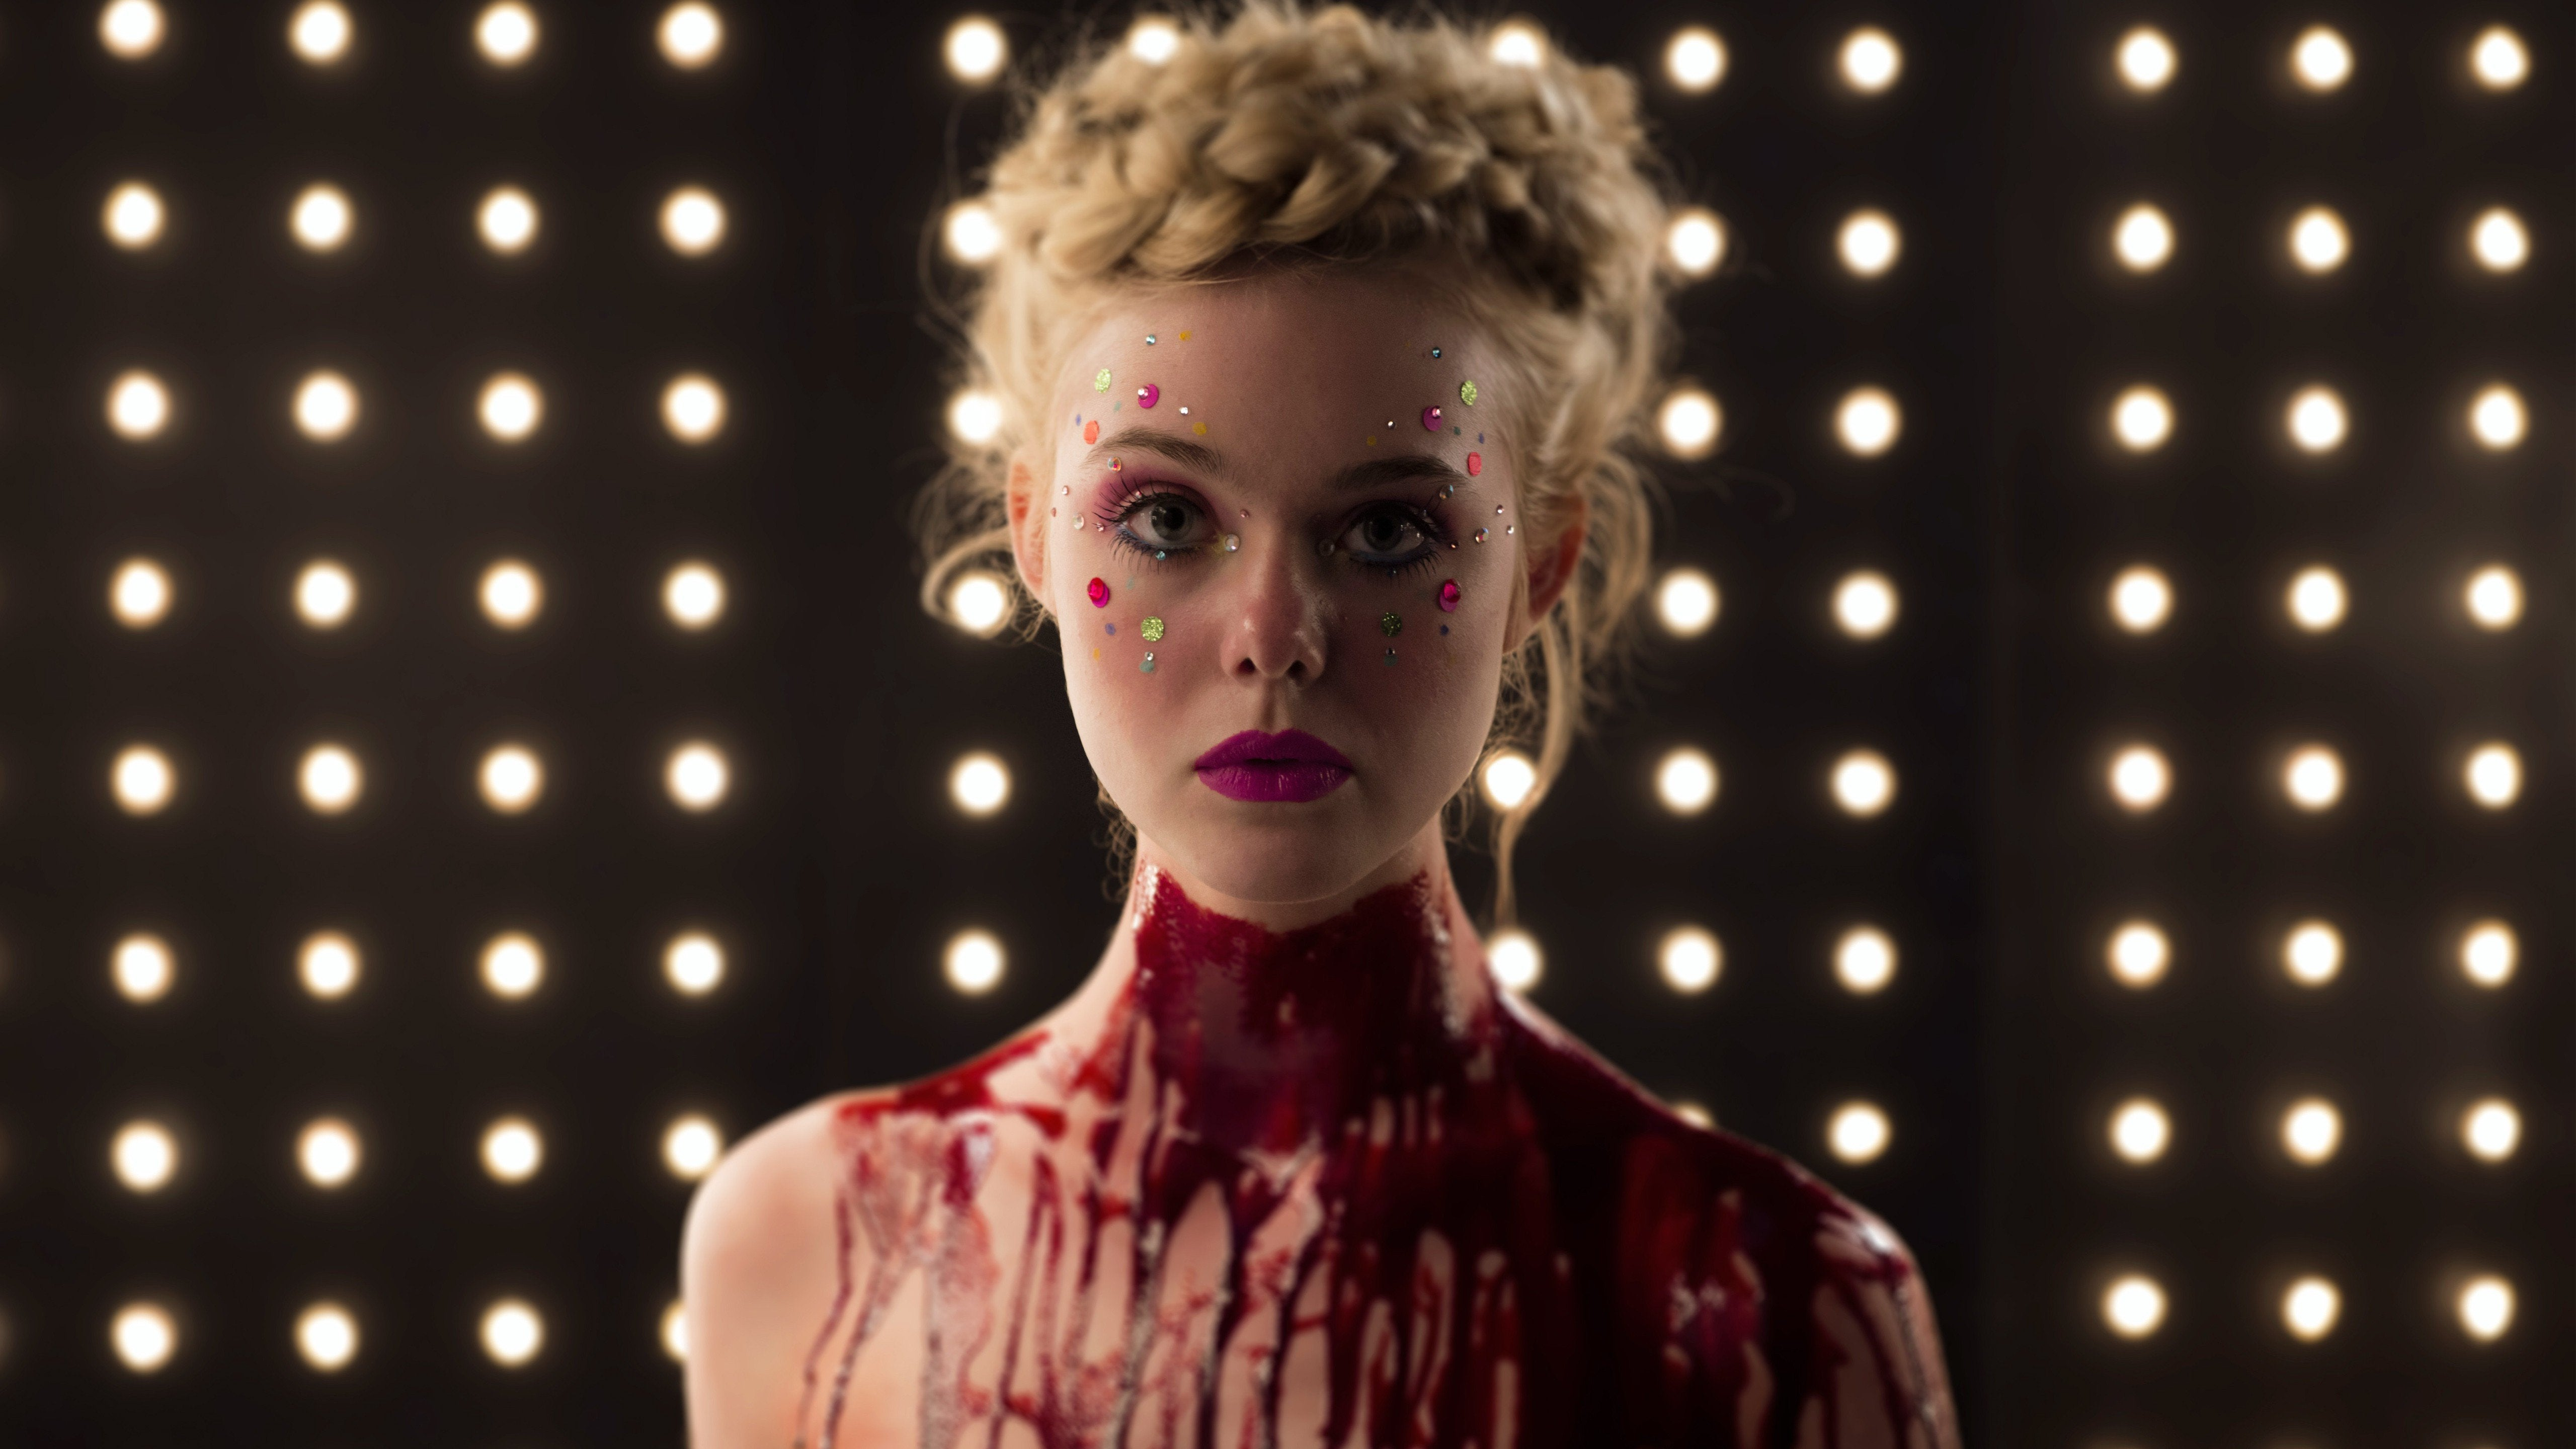 http://www.goldenglobes.com/sites/default/files/articles/cover_images/the-neon-demon.jpg